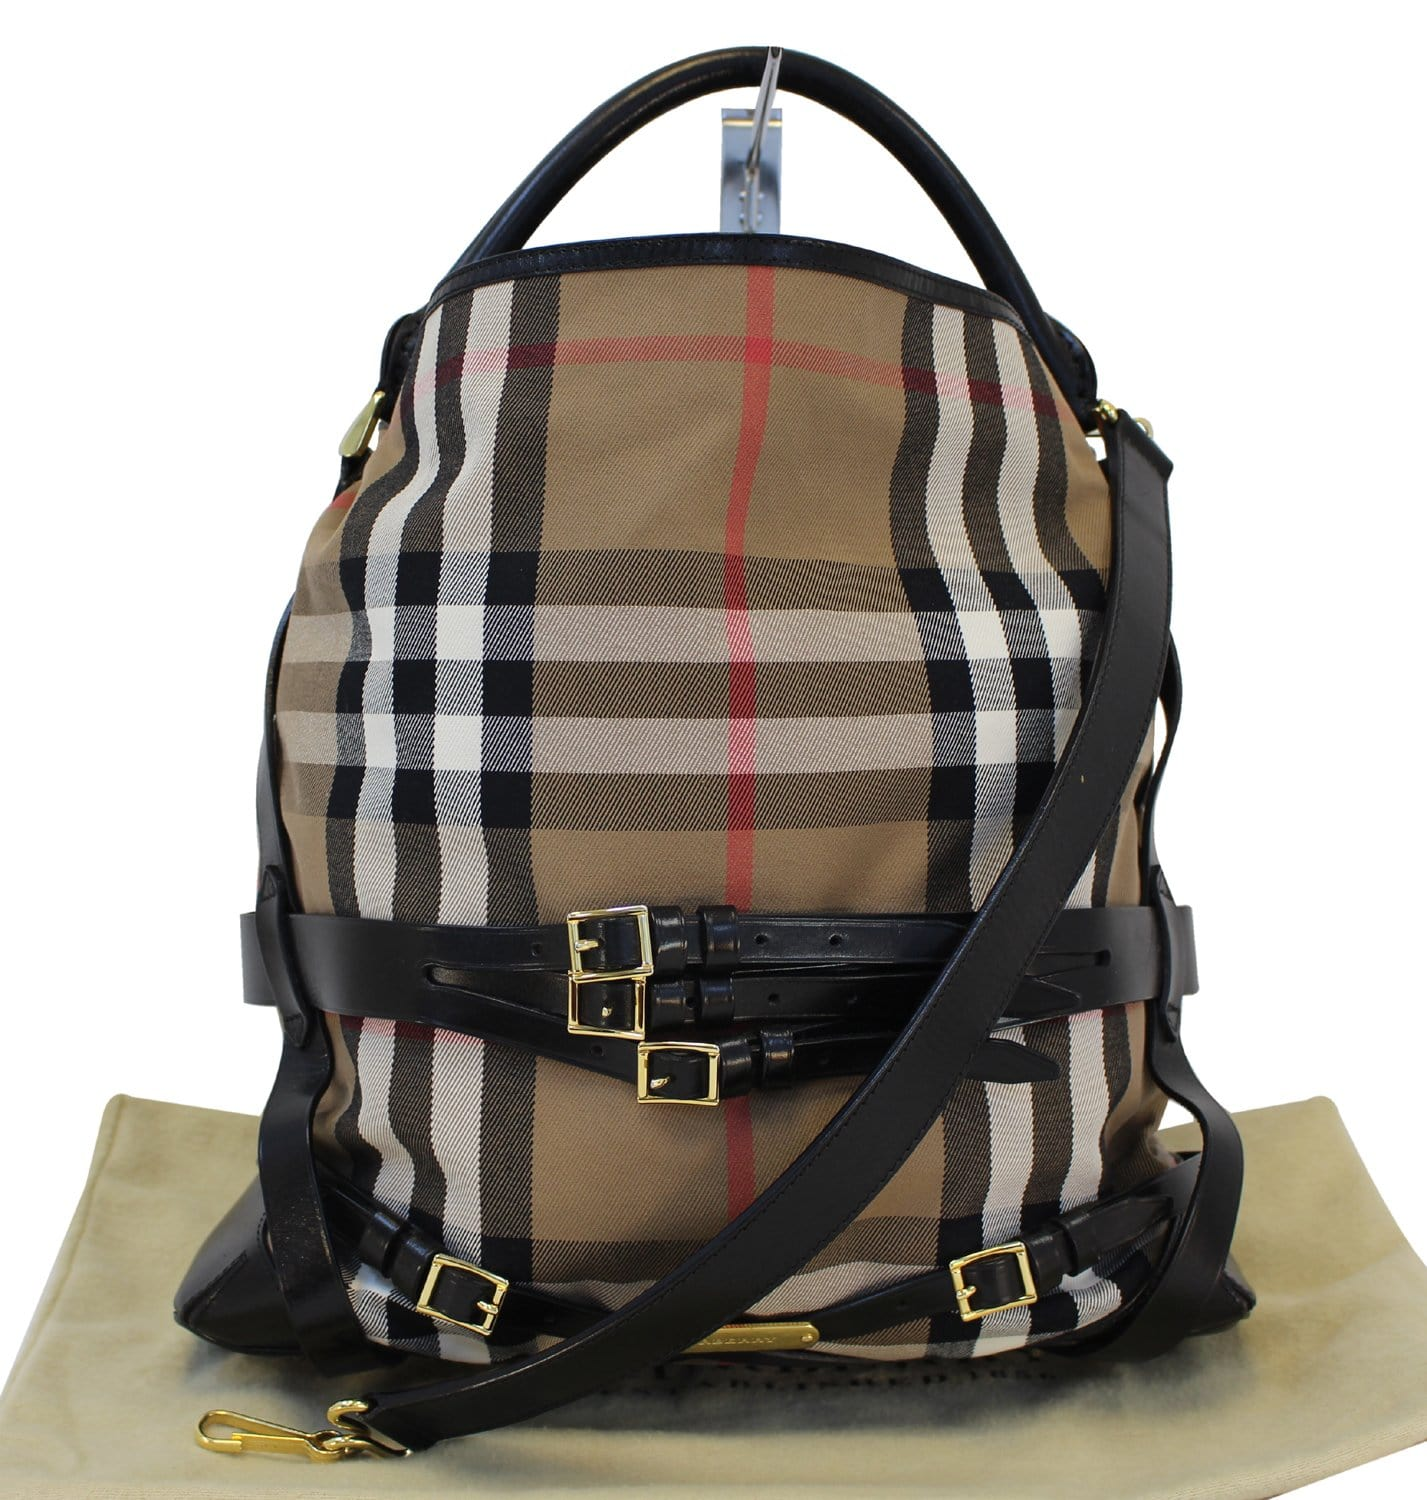 32b89219bb BURBERRY Bag - BURBERRY Nova Check Black Canvas Bridle Hobo Bag